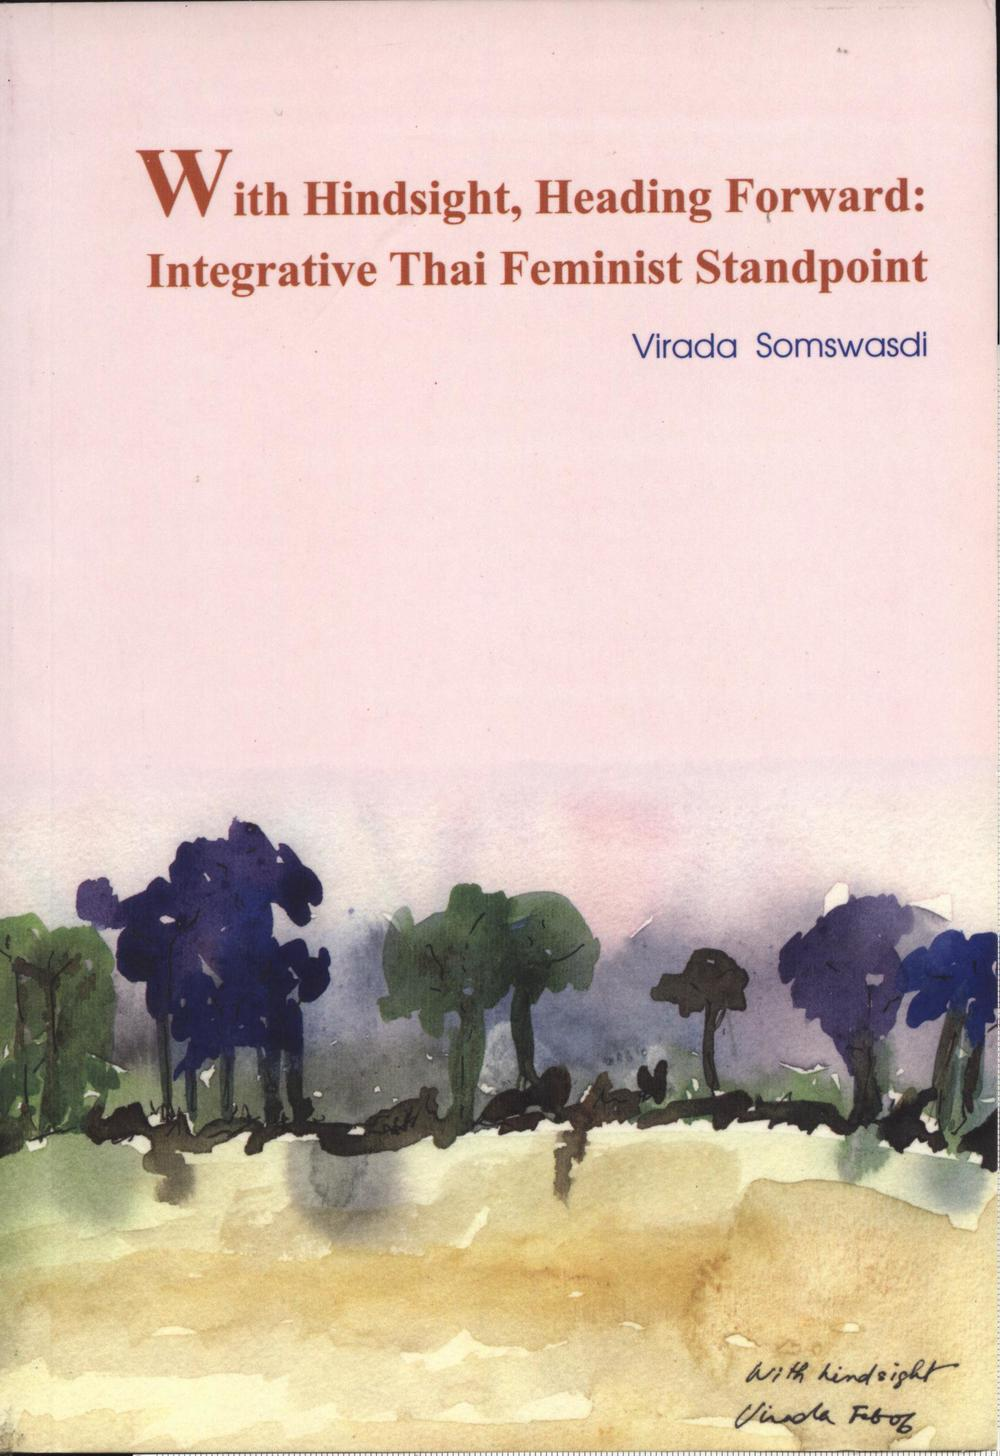 With Hindsight, Heading Forward : Integrative Thai Feminist Standpoint